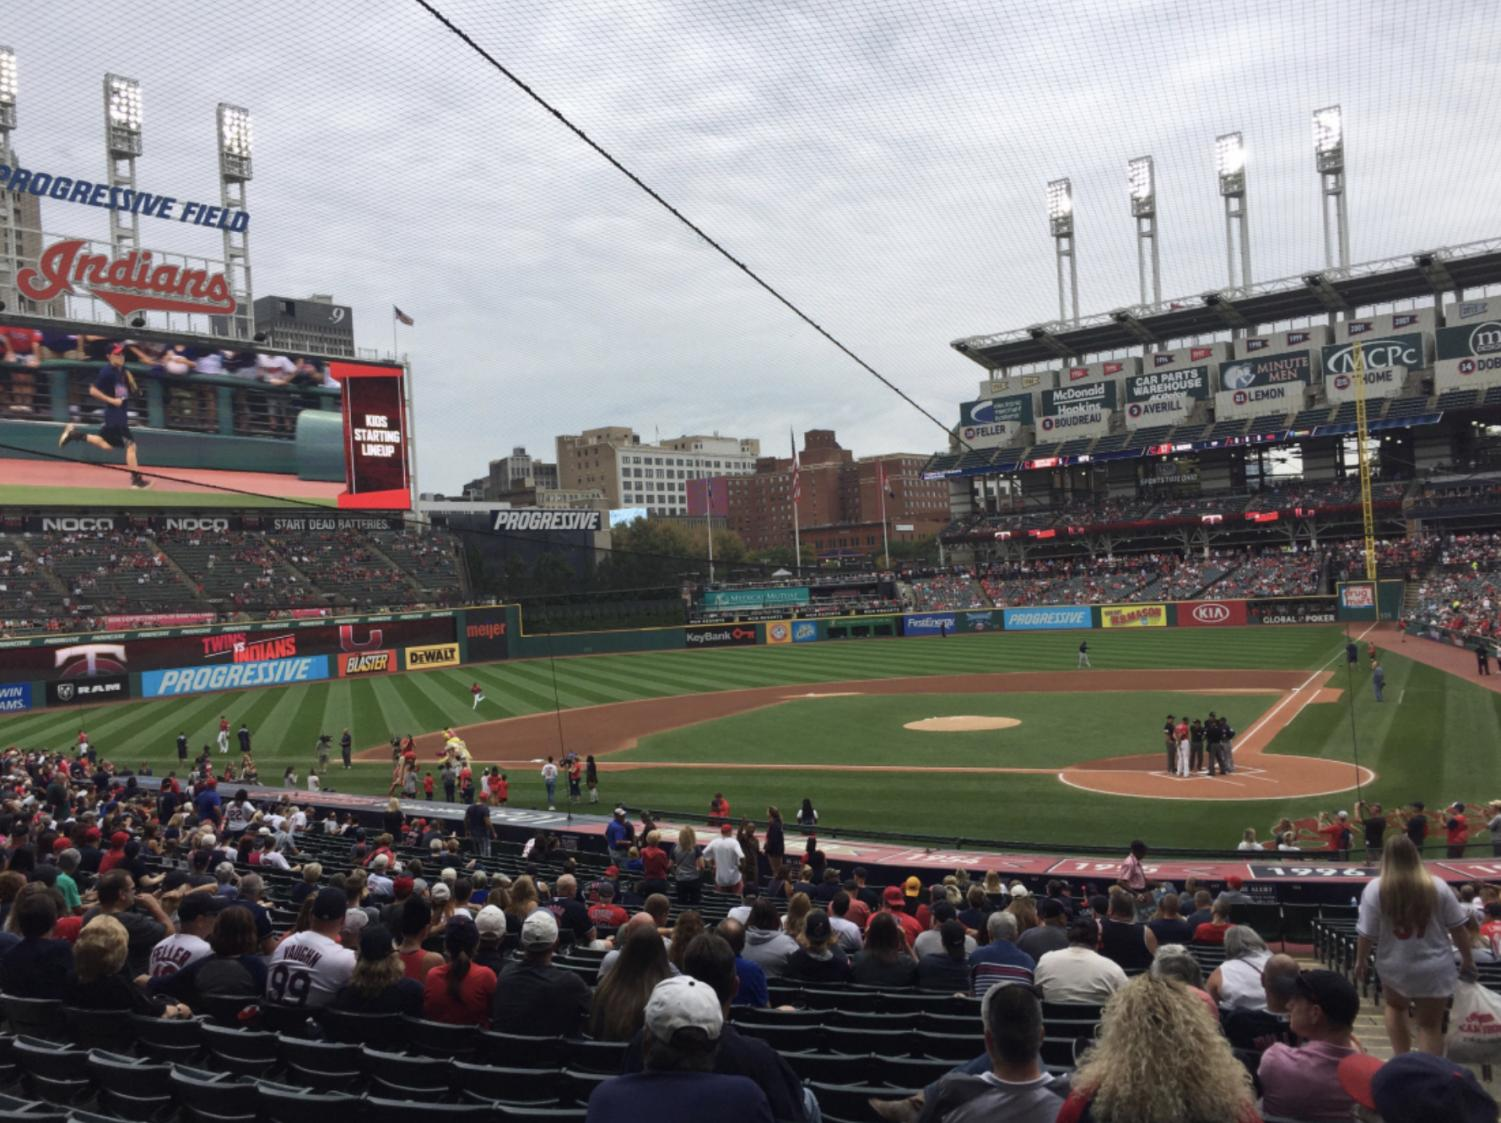 Fans fill Progressive Field minutes before game time.